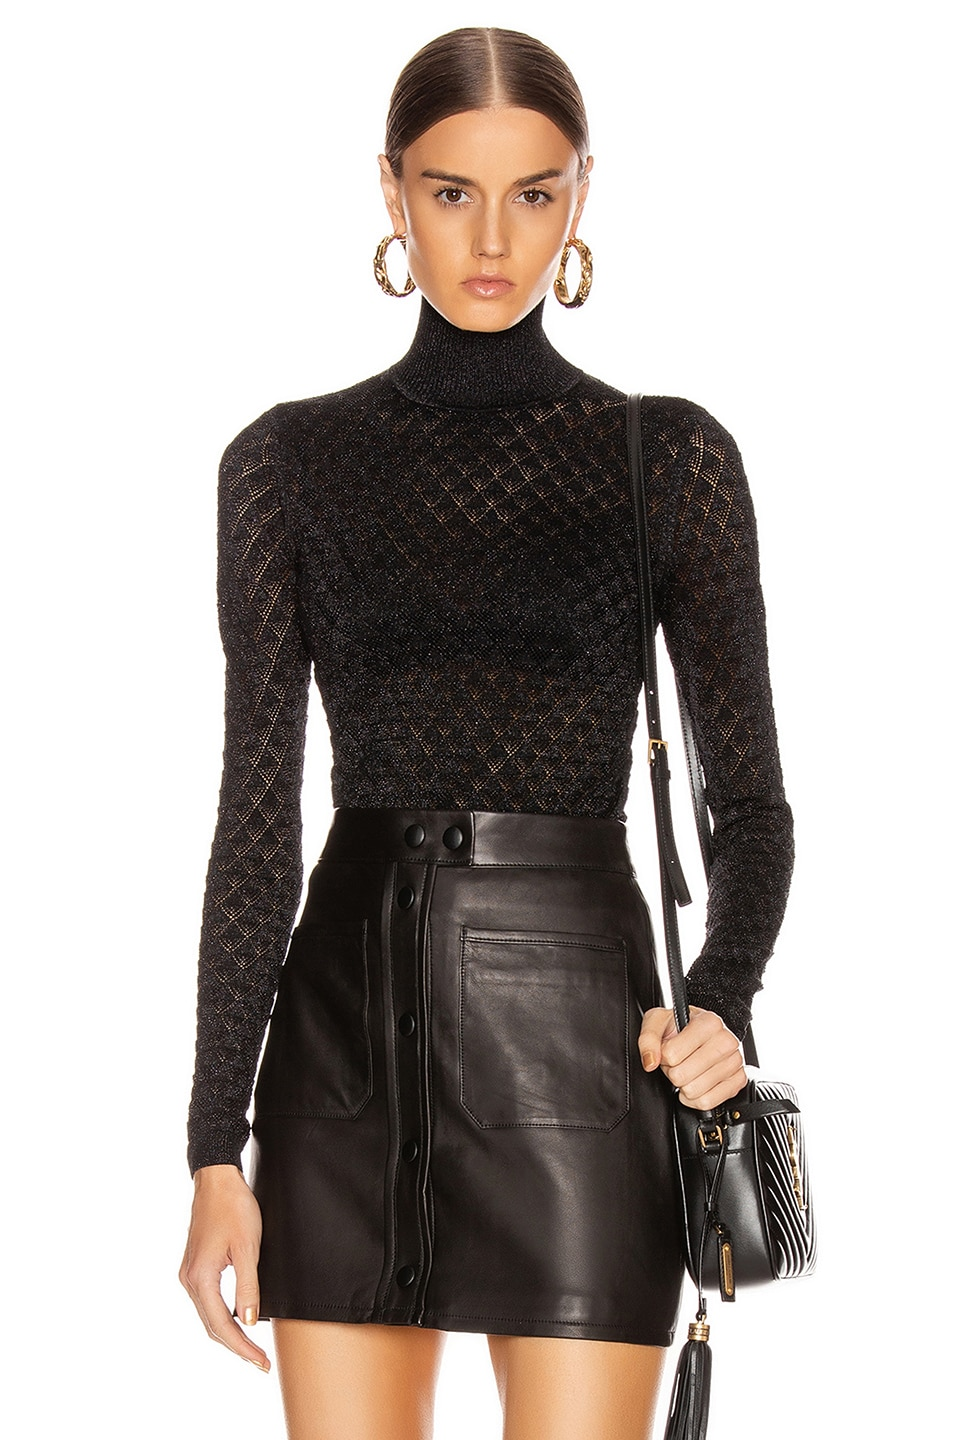 Image 1 of Cinq a Sept Lilette Turtleneck Top in Black Metallic